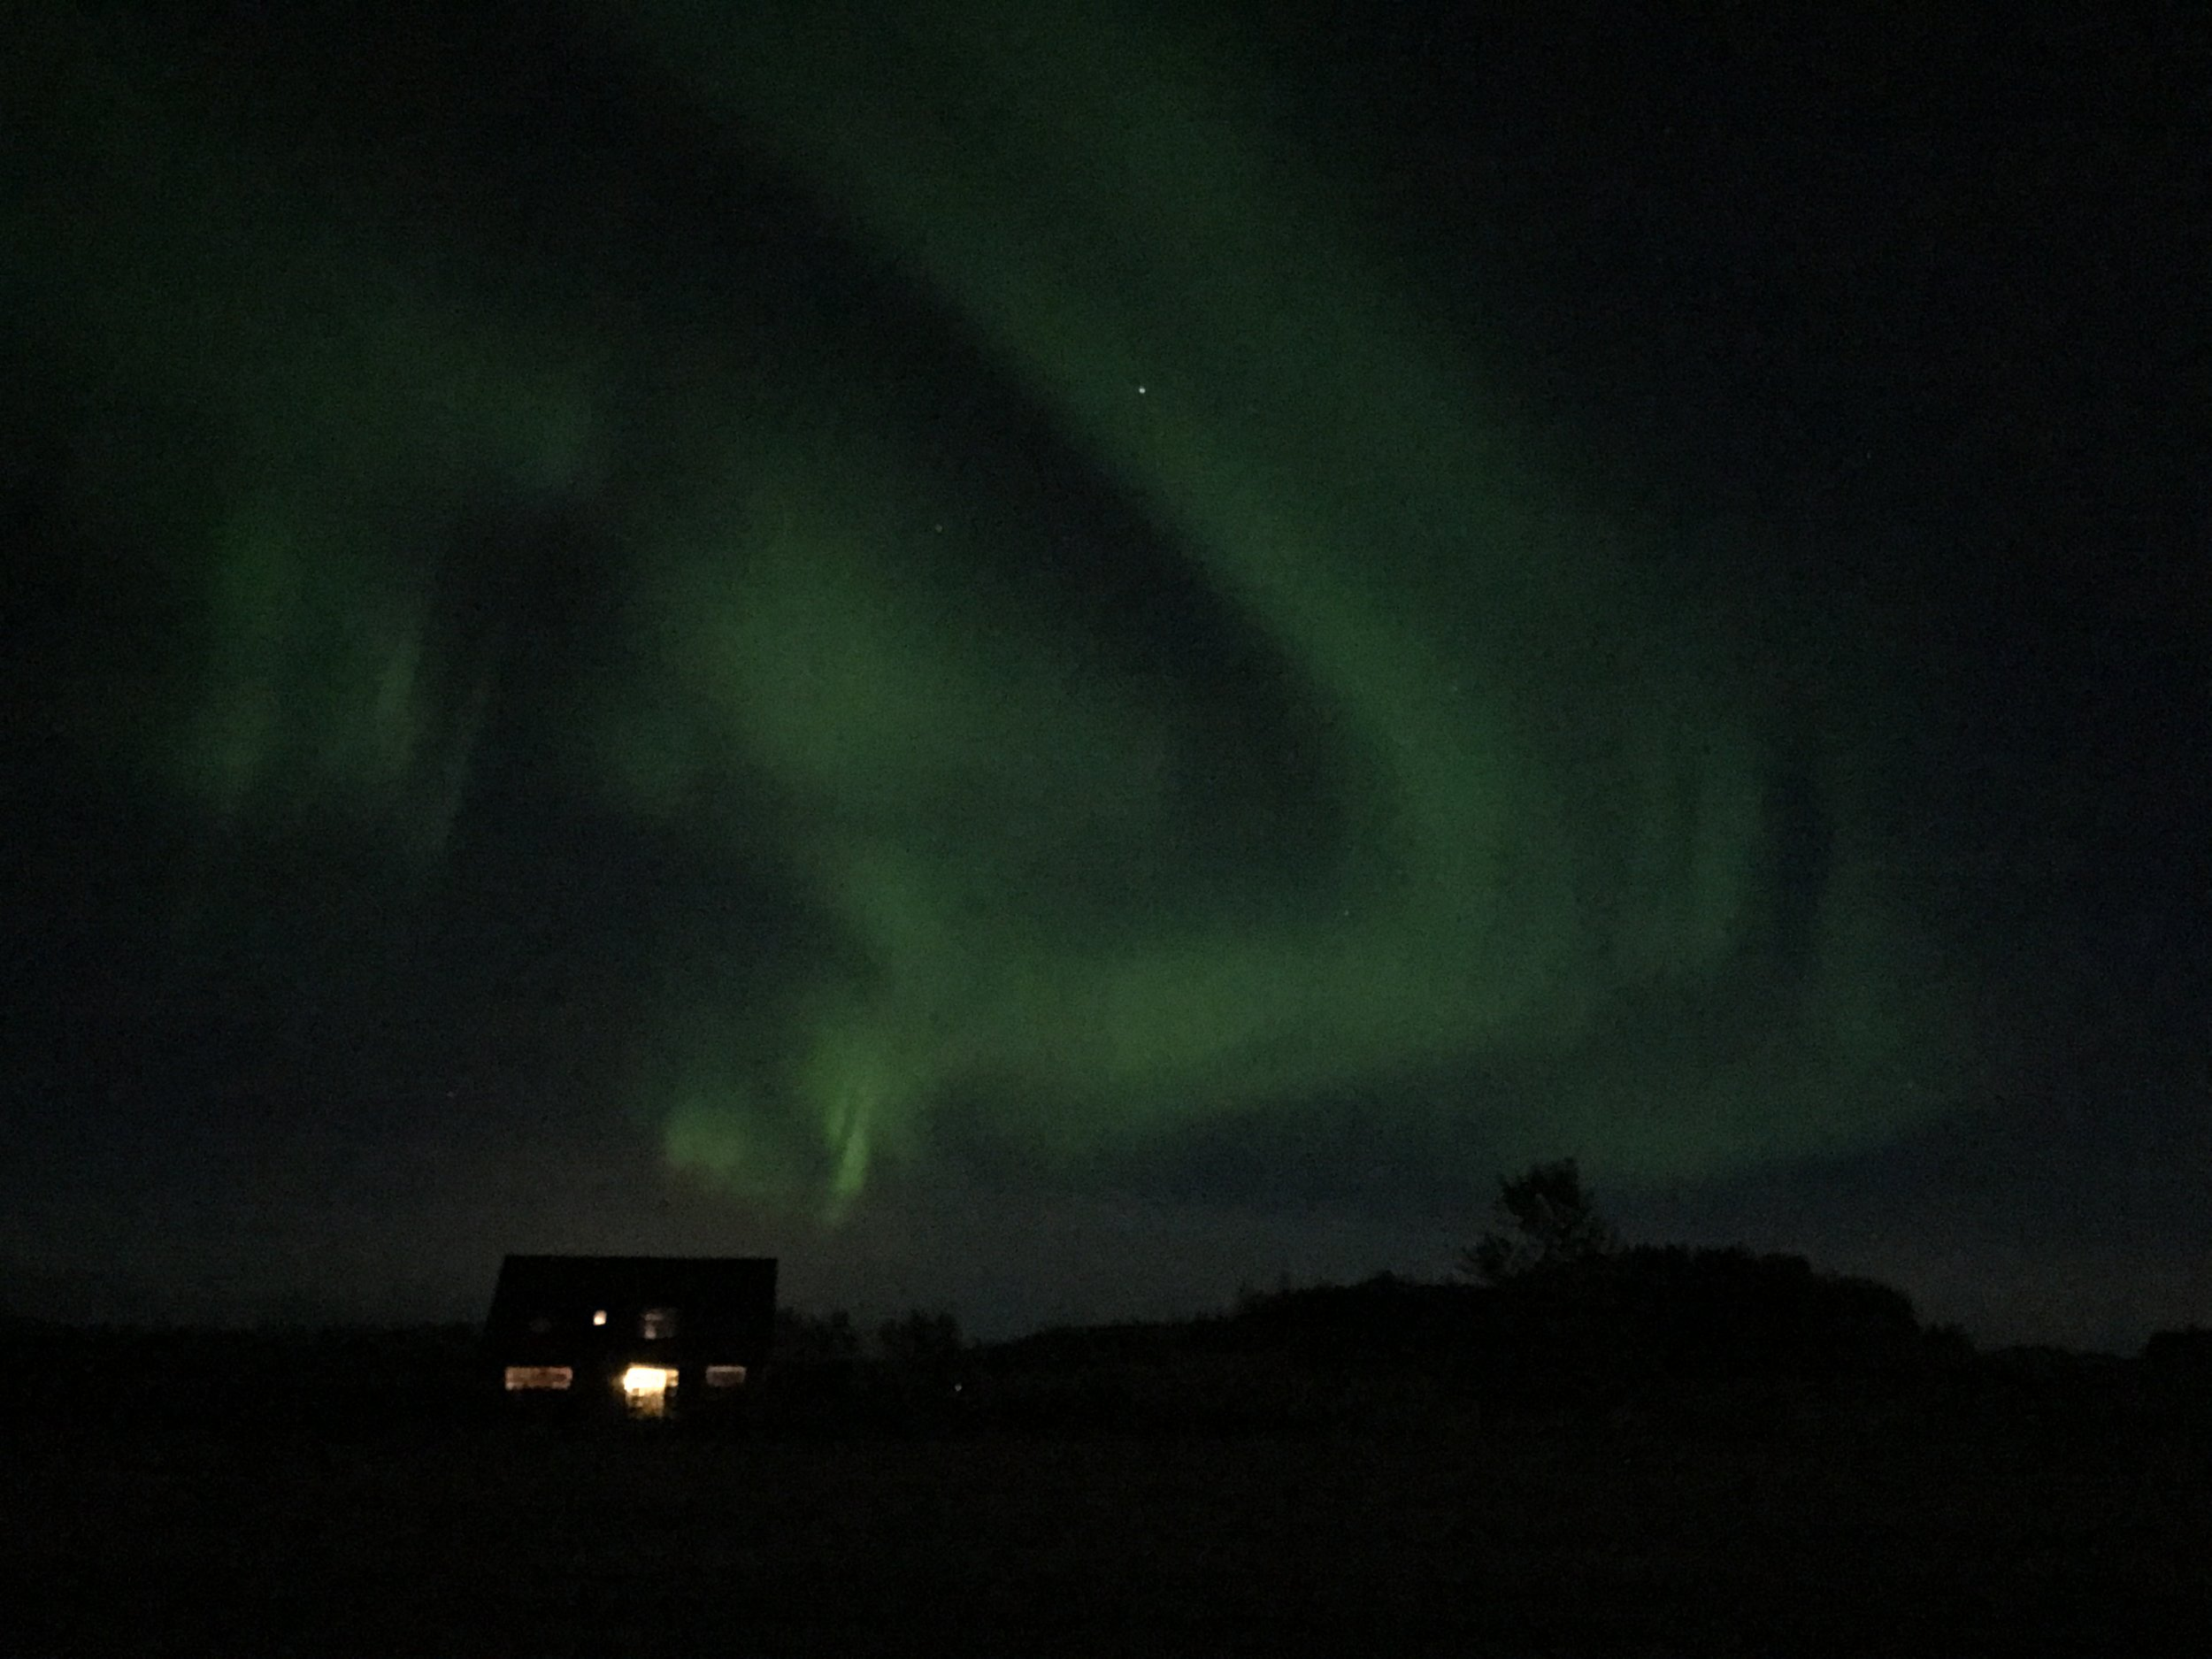 We were fortunate enough to witness the Northern Lights on our walk home from the workshop one night.